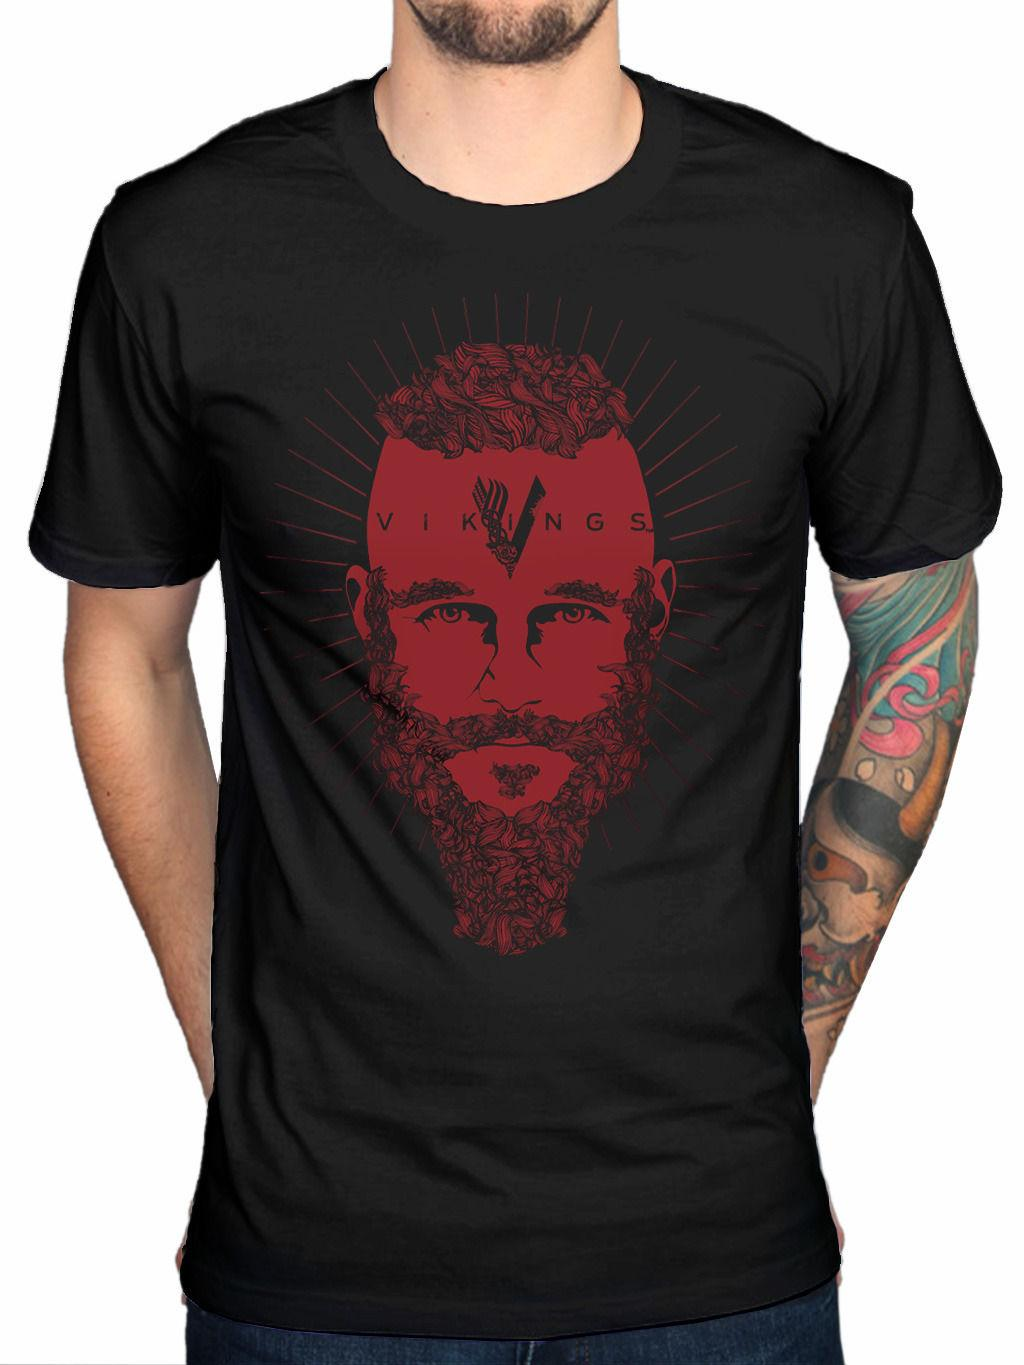 Official Vikings Ragnar Face T-Shirt TV Series History Channel Fan  Merchandise knitted comfortable fabric street style men t-shirt